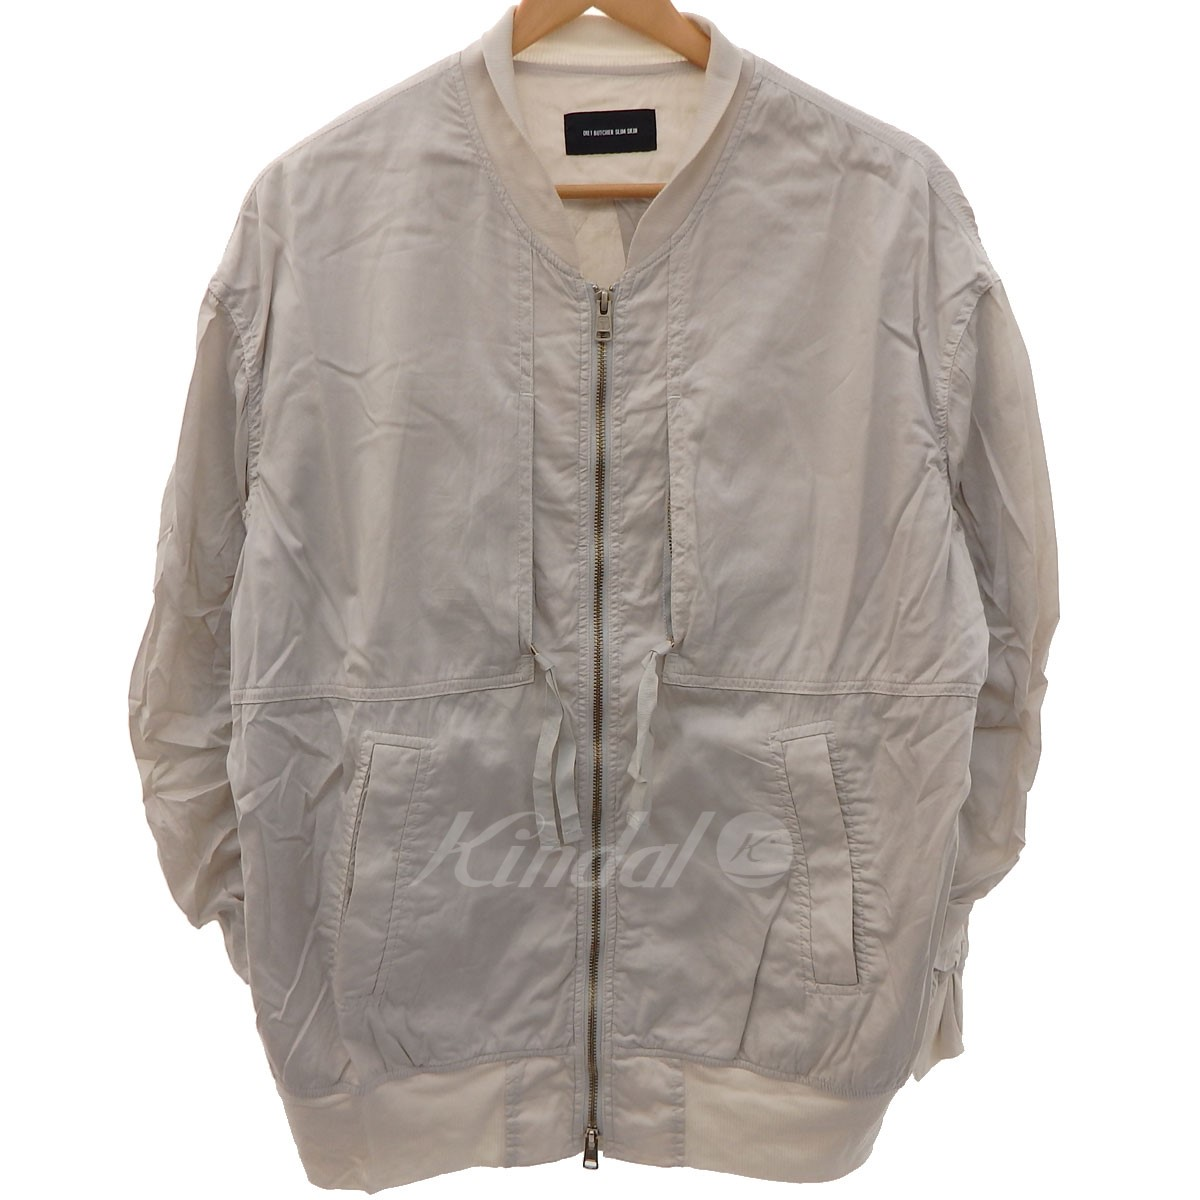 【中古】DIET BUTIER SLIM SKIN 17SS Garment dyed flight jacket MA-1 フライトジャケット 【送料無料】 【004261】 【KIND1550】